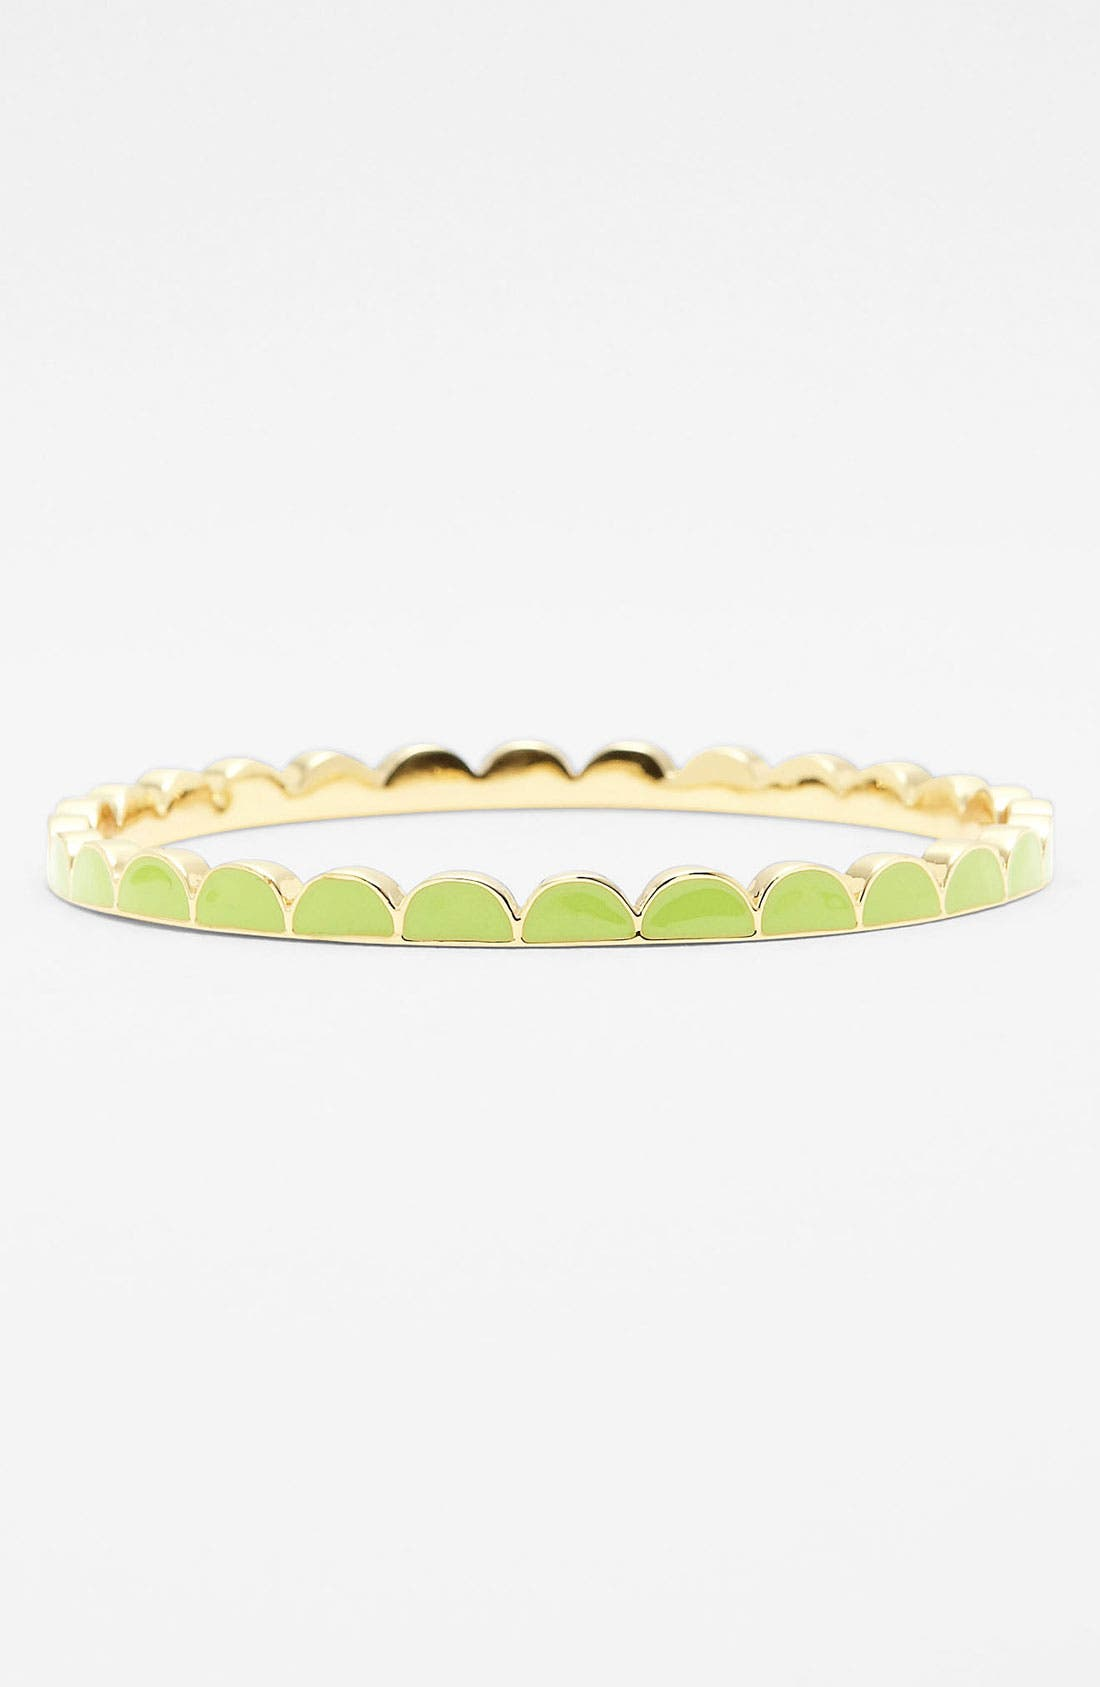 Main Image - kate spade new york 'scallop' bangle